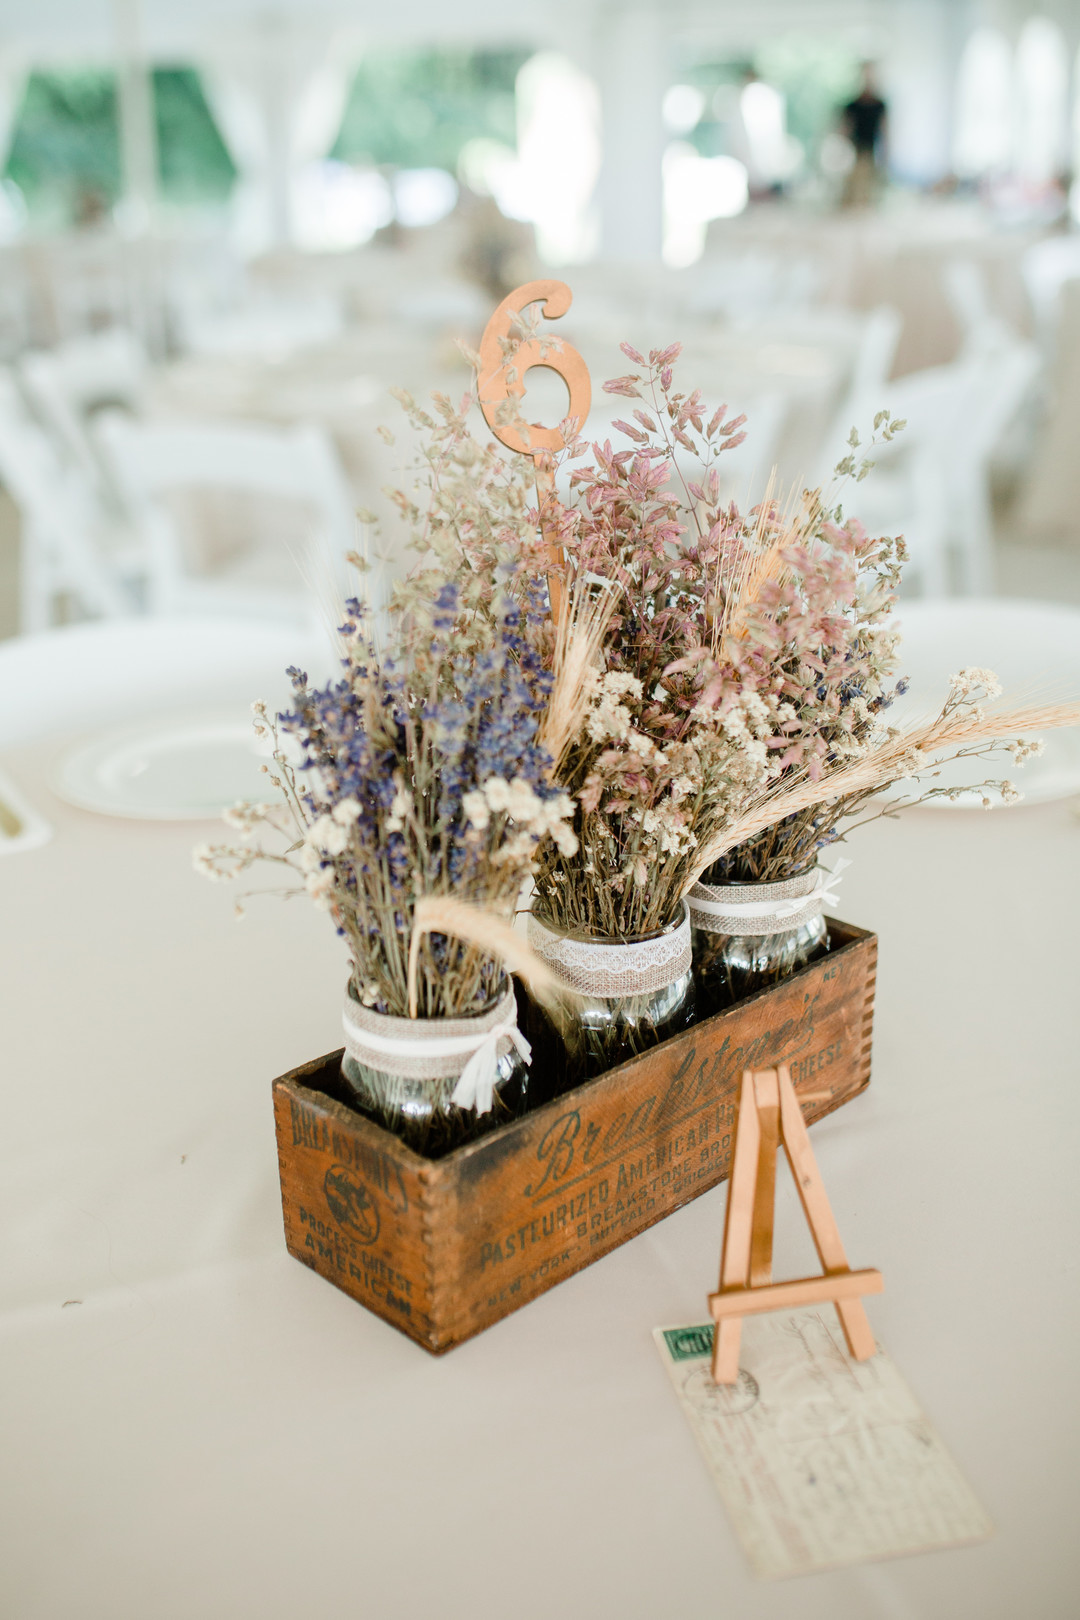 Rustic wedding centerpieces: Rustic country wedding in Minooka, IL captured by Katie Brsan Photography. Visit CHItheeWED.com for more wedding inspiration!